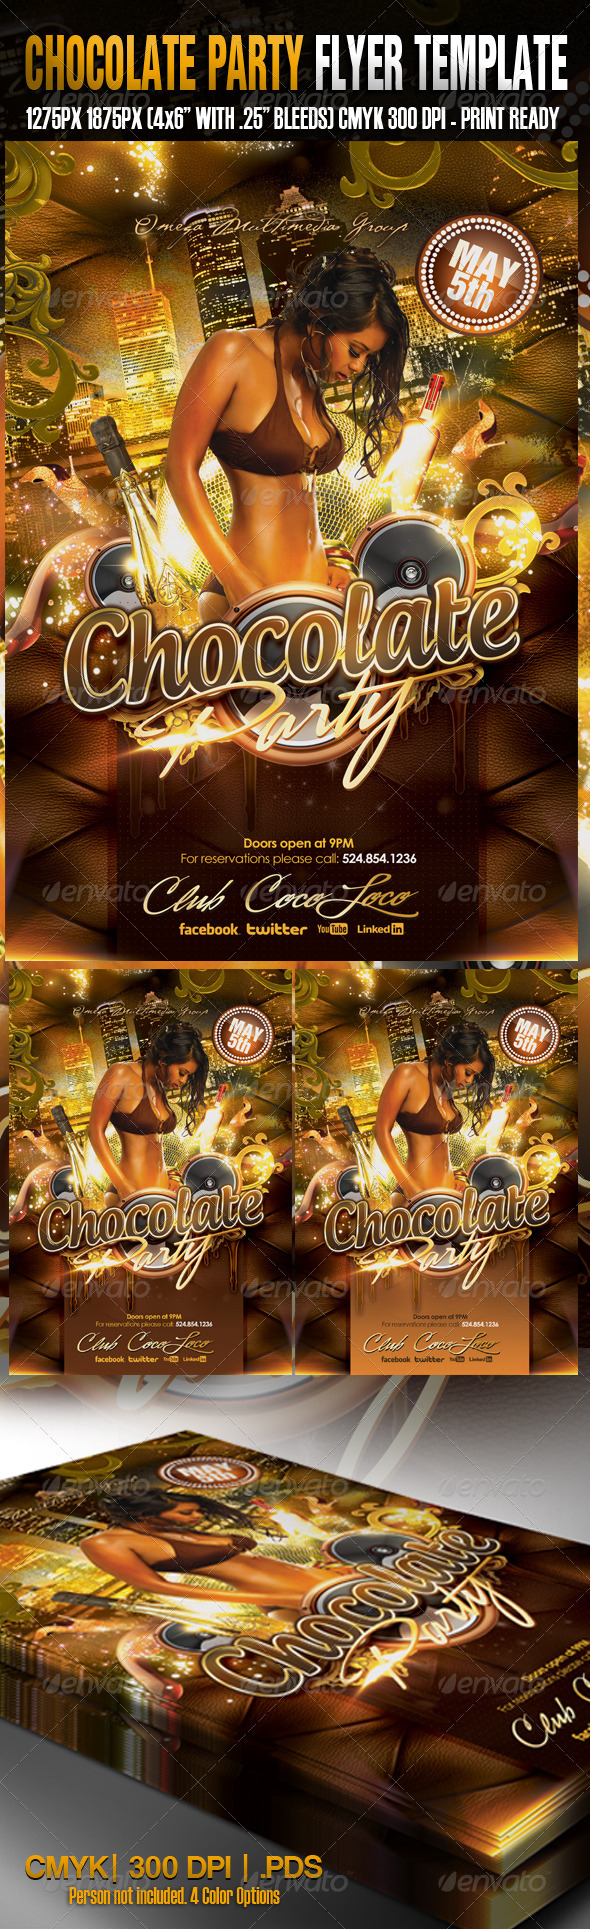 Chocolate Party Template - Clubs & Parties Events